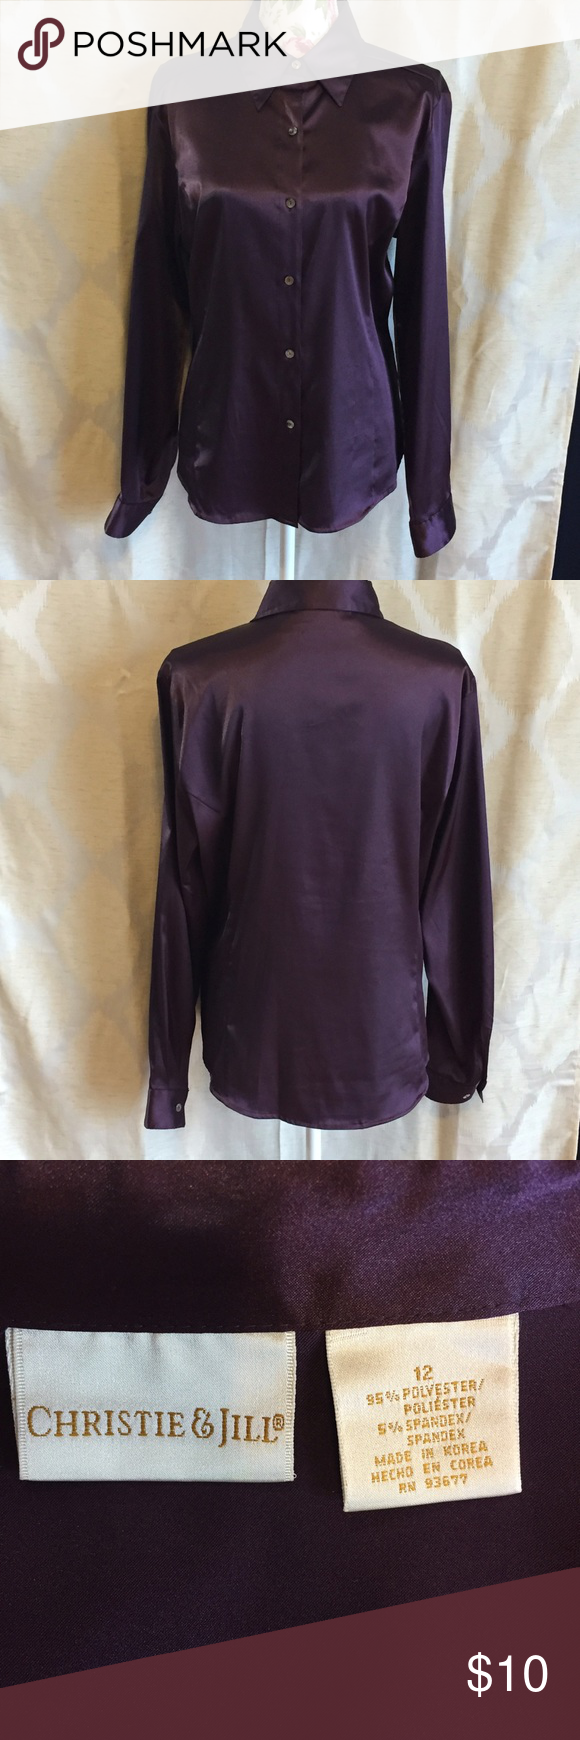 Silky royal purple button down Silky royal purple button down. 95% polyester, 5% spandex. Bust 21 inches, length 27 inches, arm 24.5 inches. christie & jill Tops Button Down Shirts